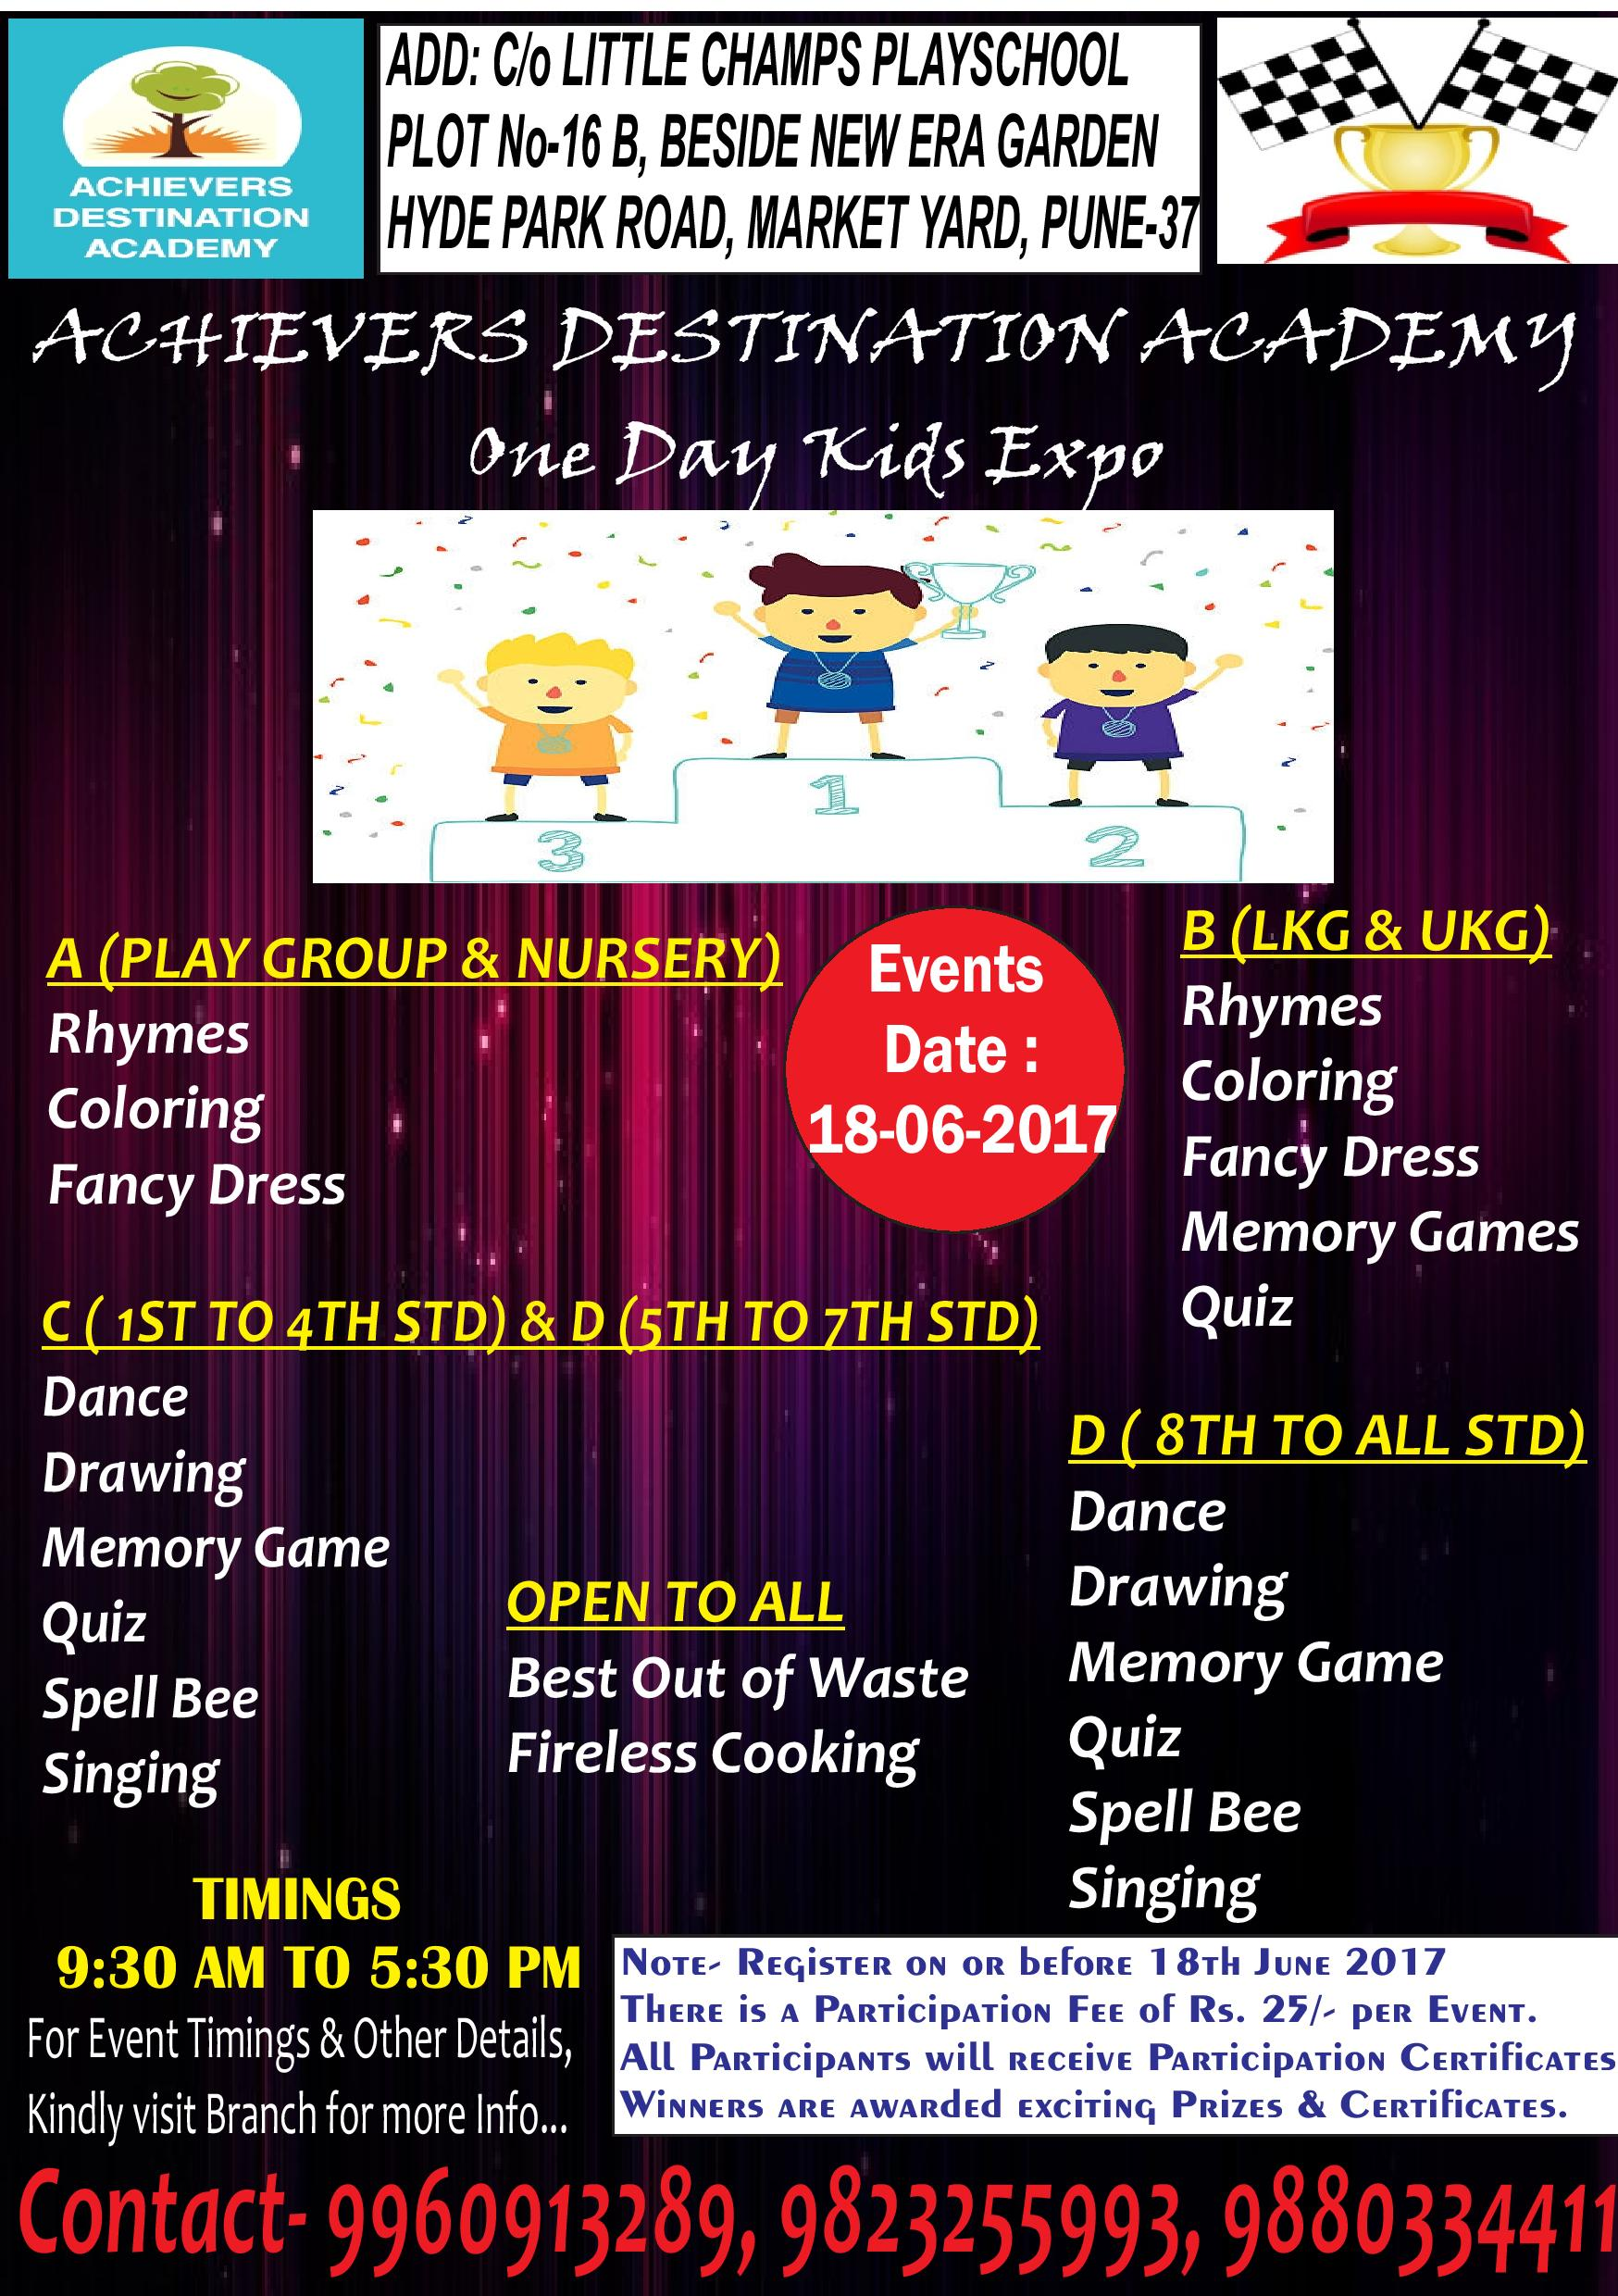 Achievers Destination Academy Conducted One Day Expo for All Age Group